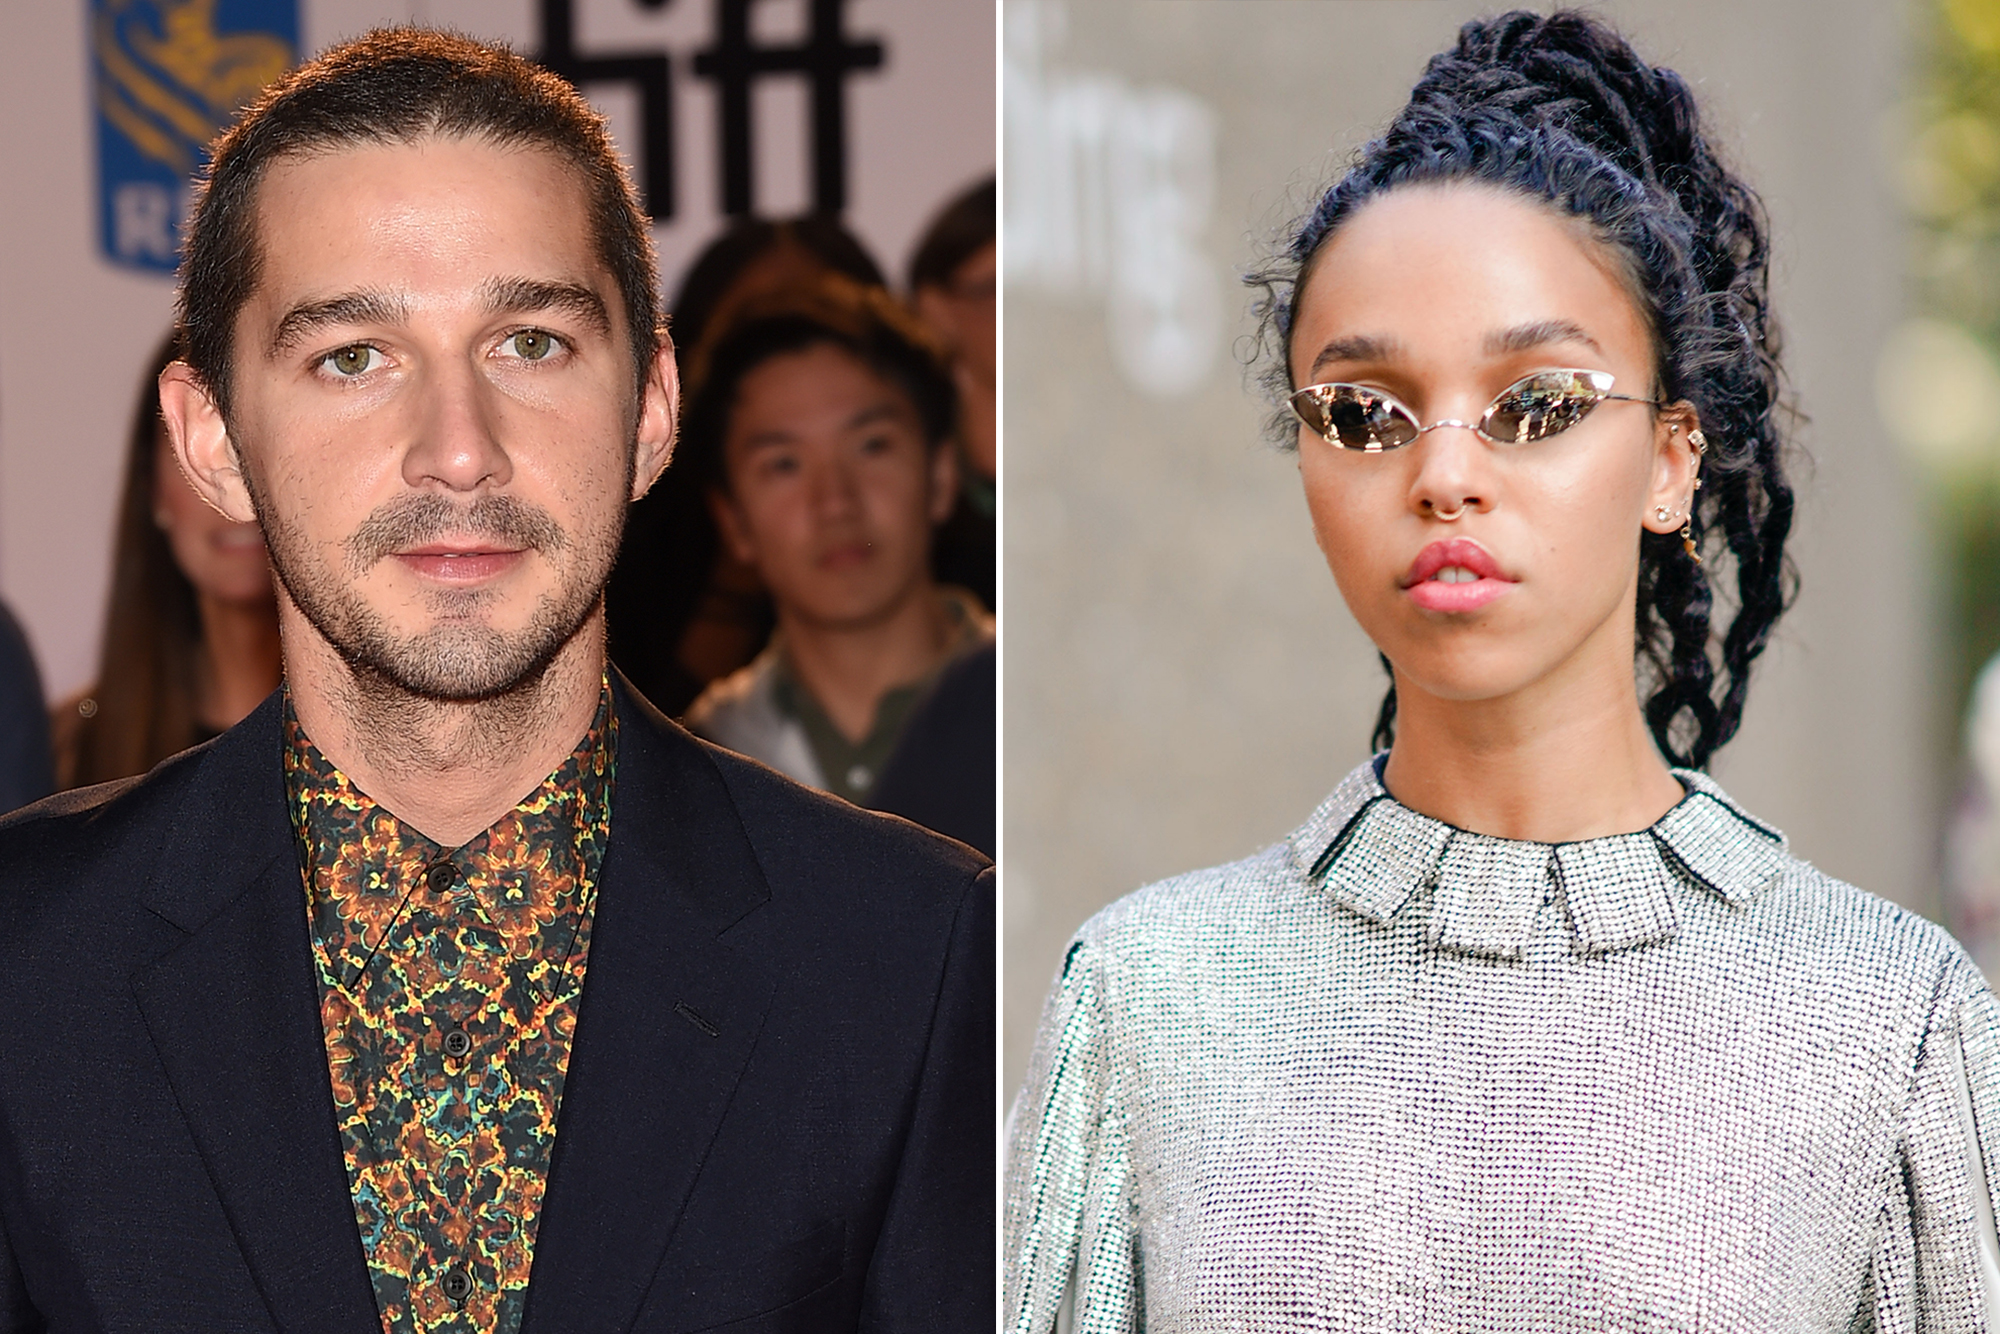 FKA Twigs sues Shia LaBeouf over alleged abusive relationship